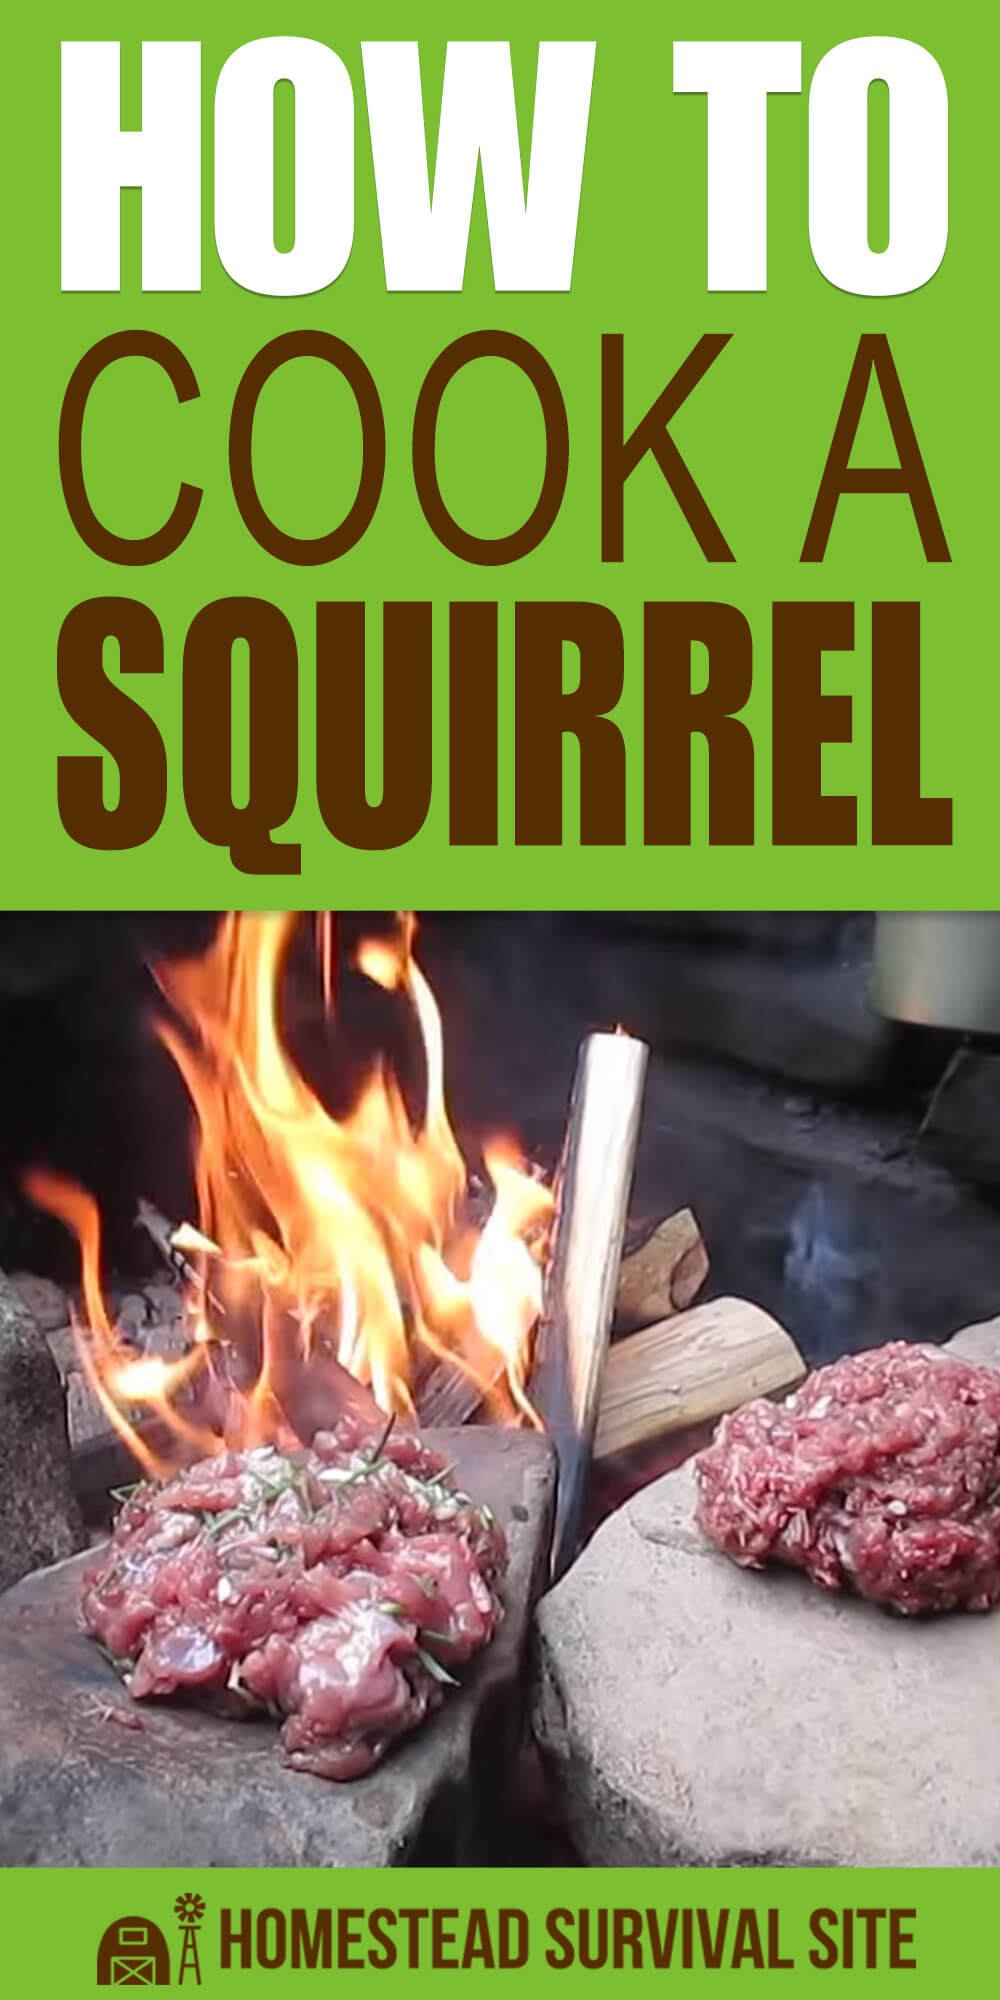 How To Cook A Squirrel